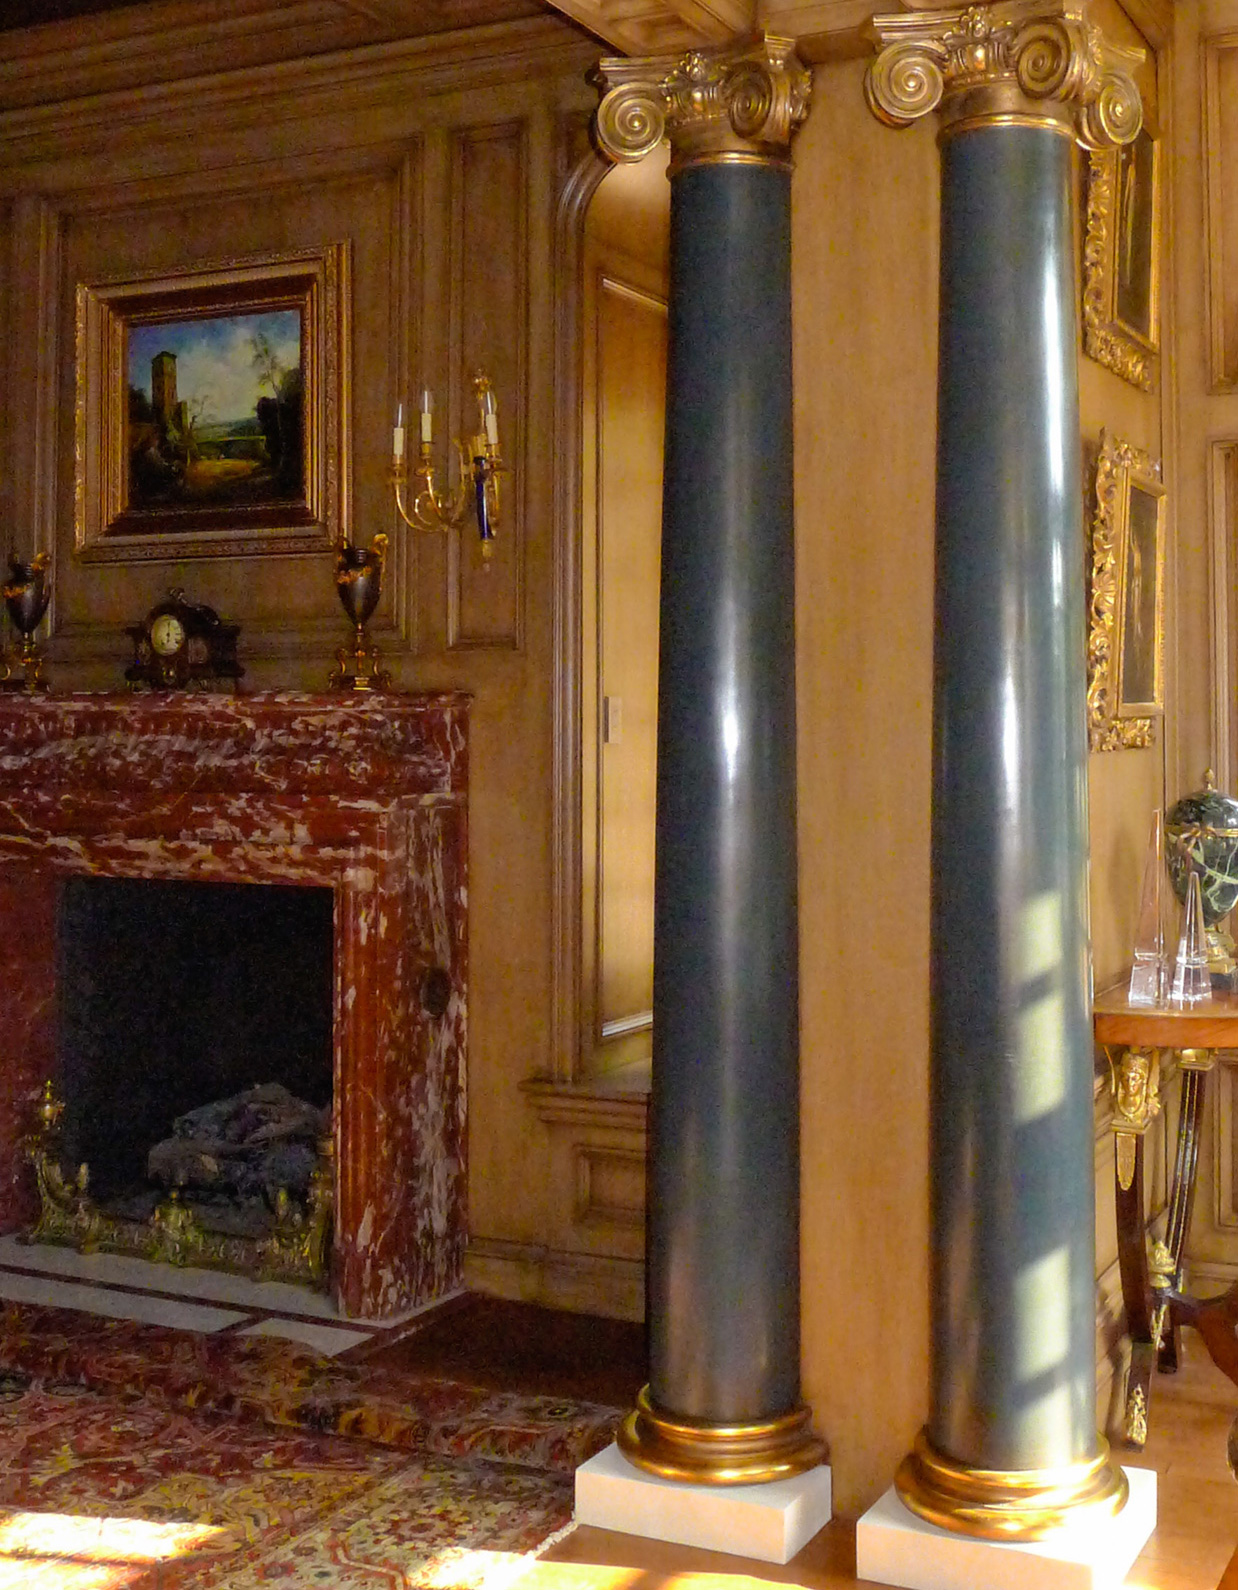 Interior view of two blue finished columns and gilded details for an opulent room with fireplace in the background